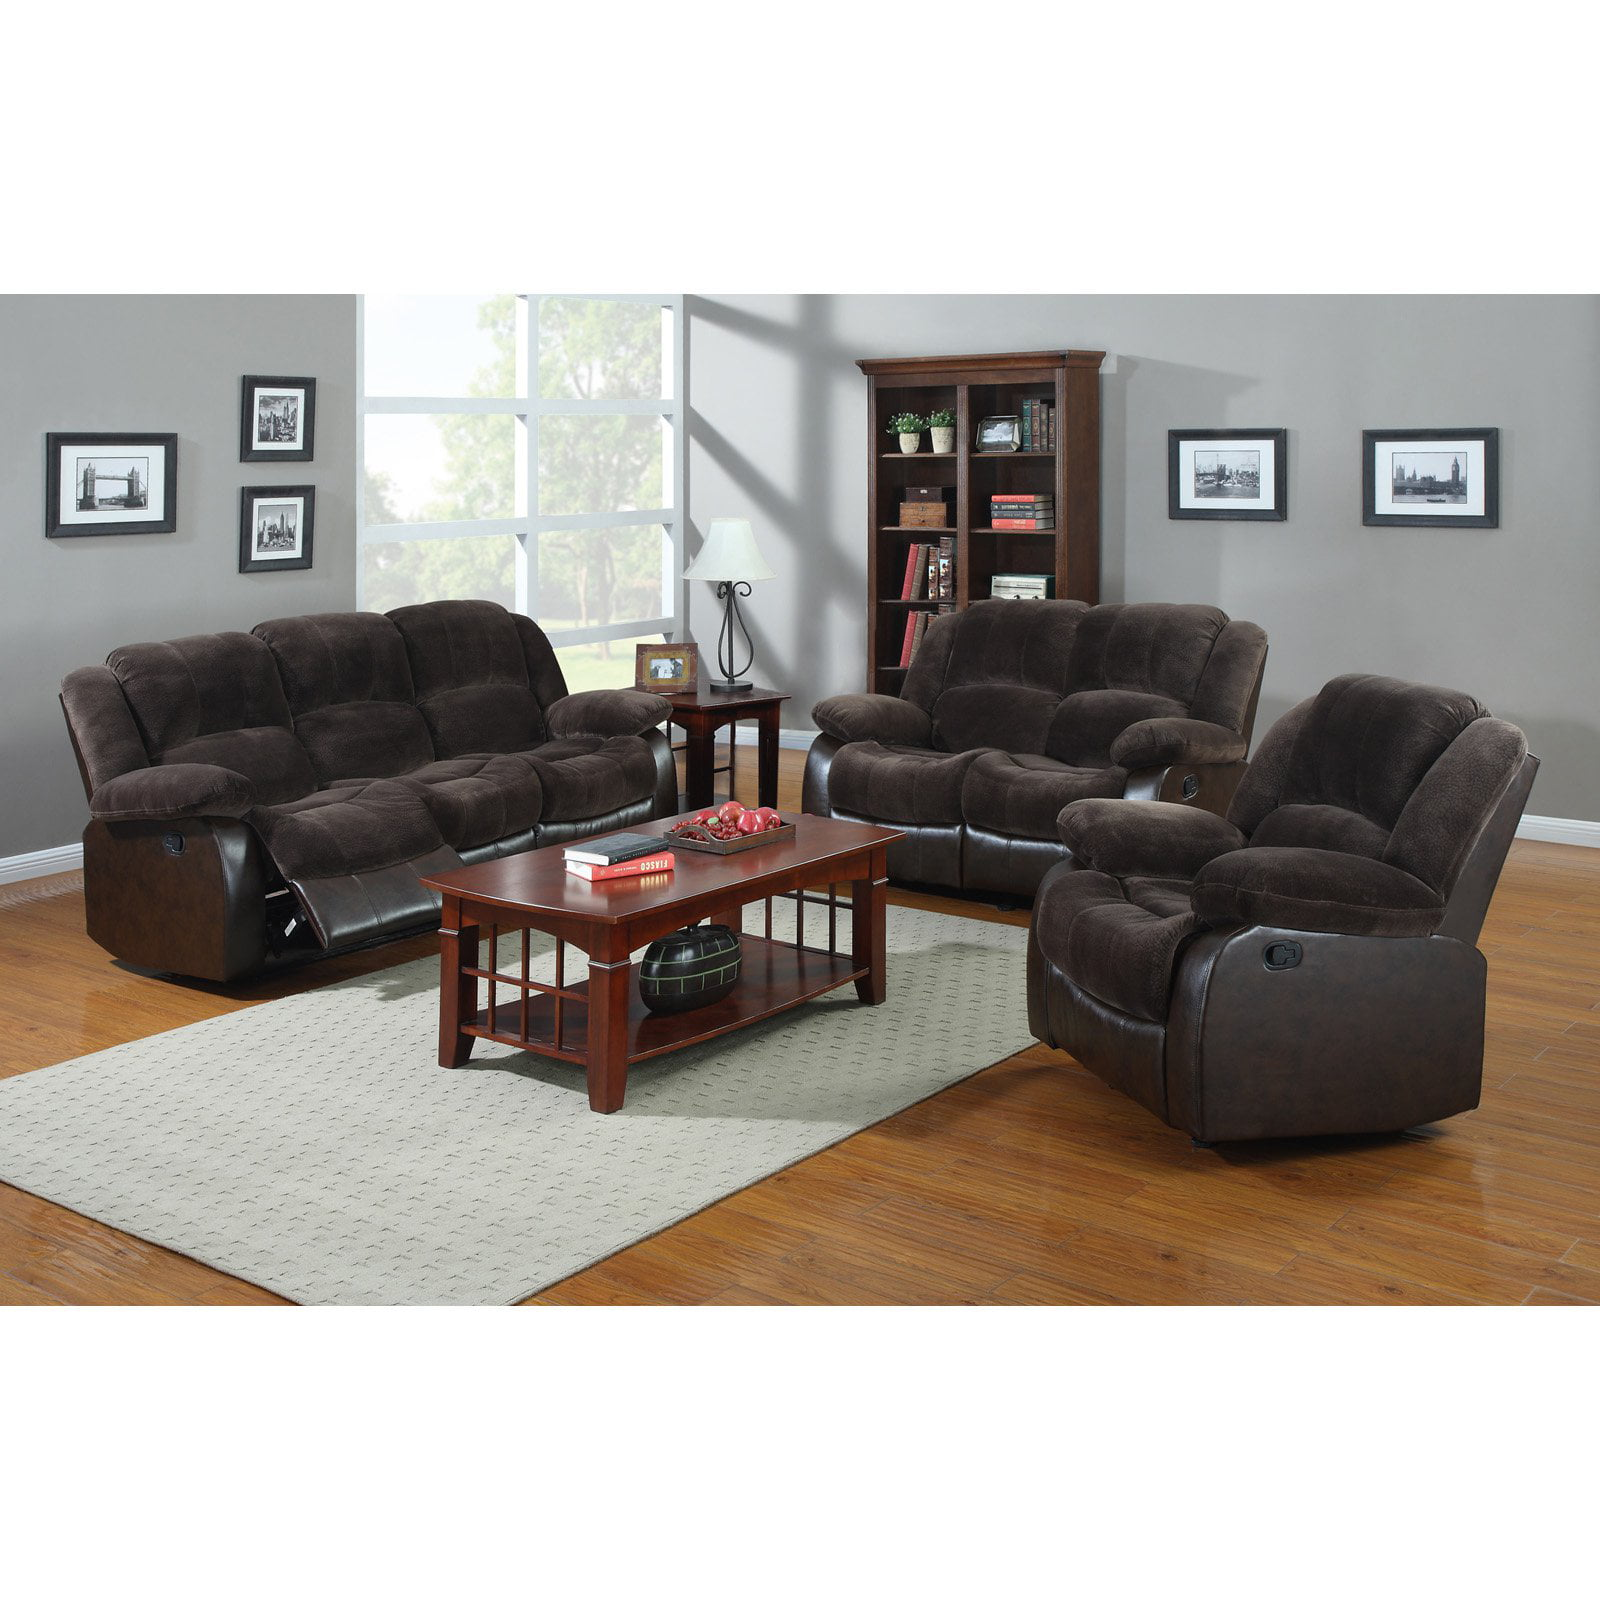 NH Designs 71004B Champion and Faux Leather Sofa Recliner and ...